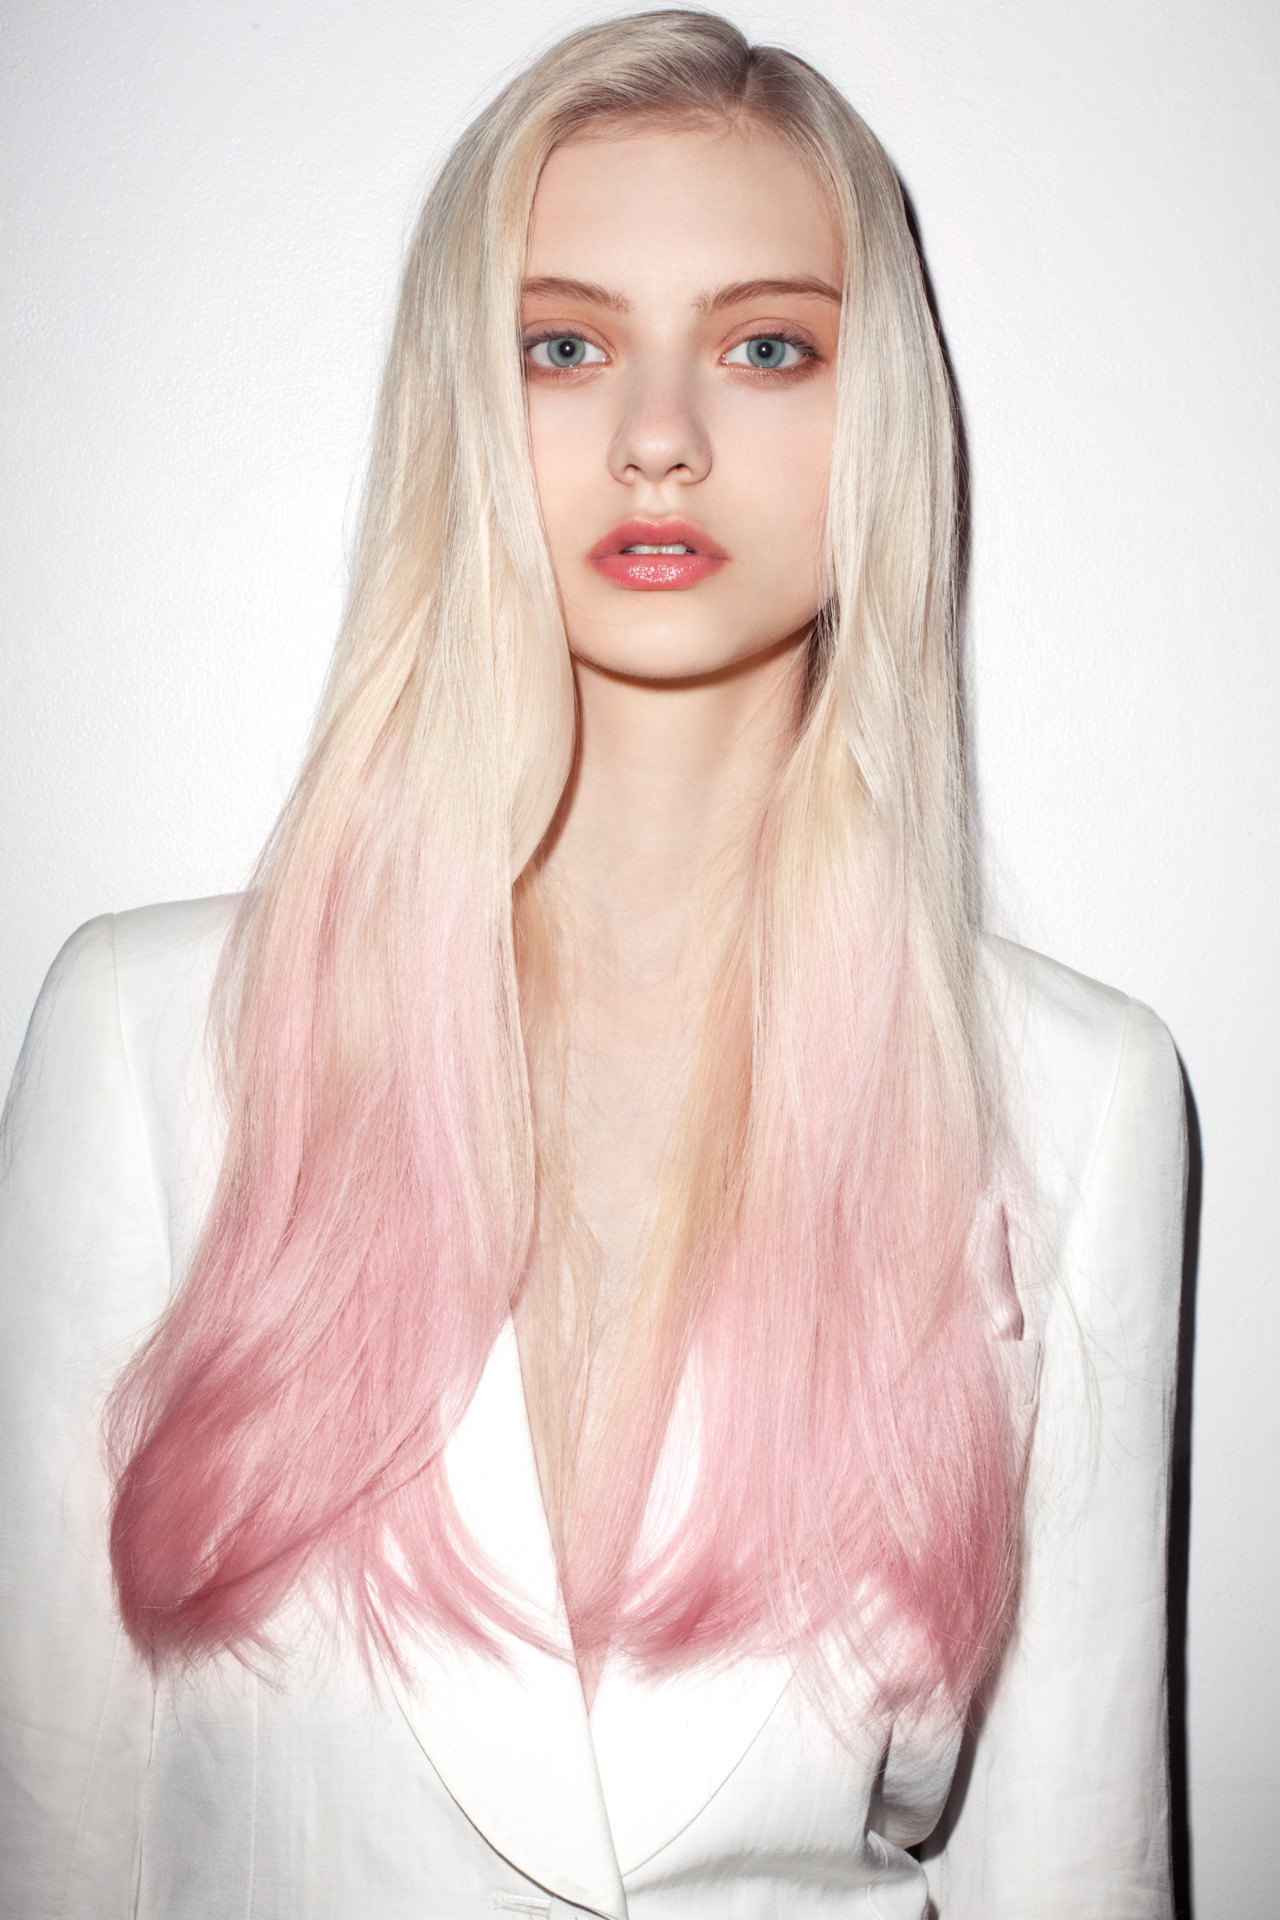 2012 Fall Hair Trends  Dipped Dyed Ends  Fashionandbeautyscene39s Blog